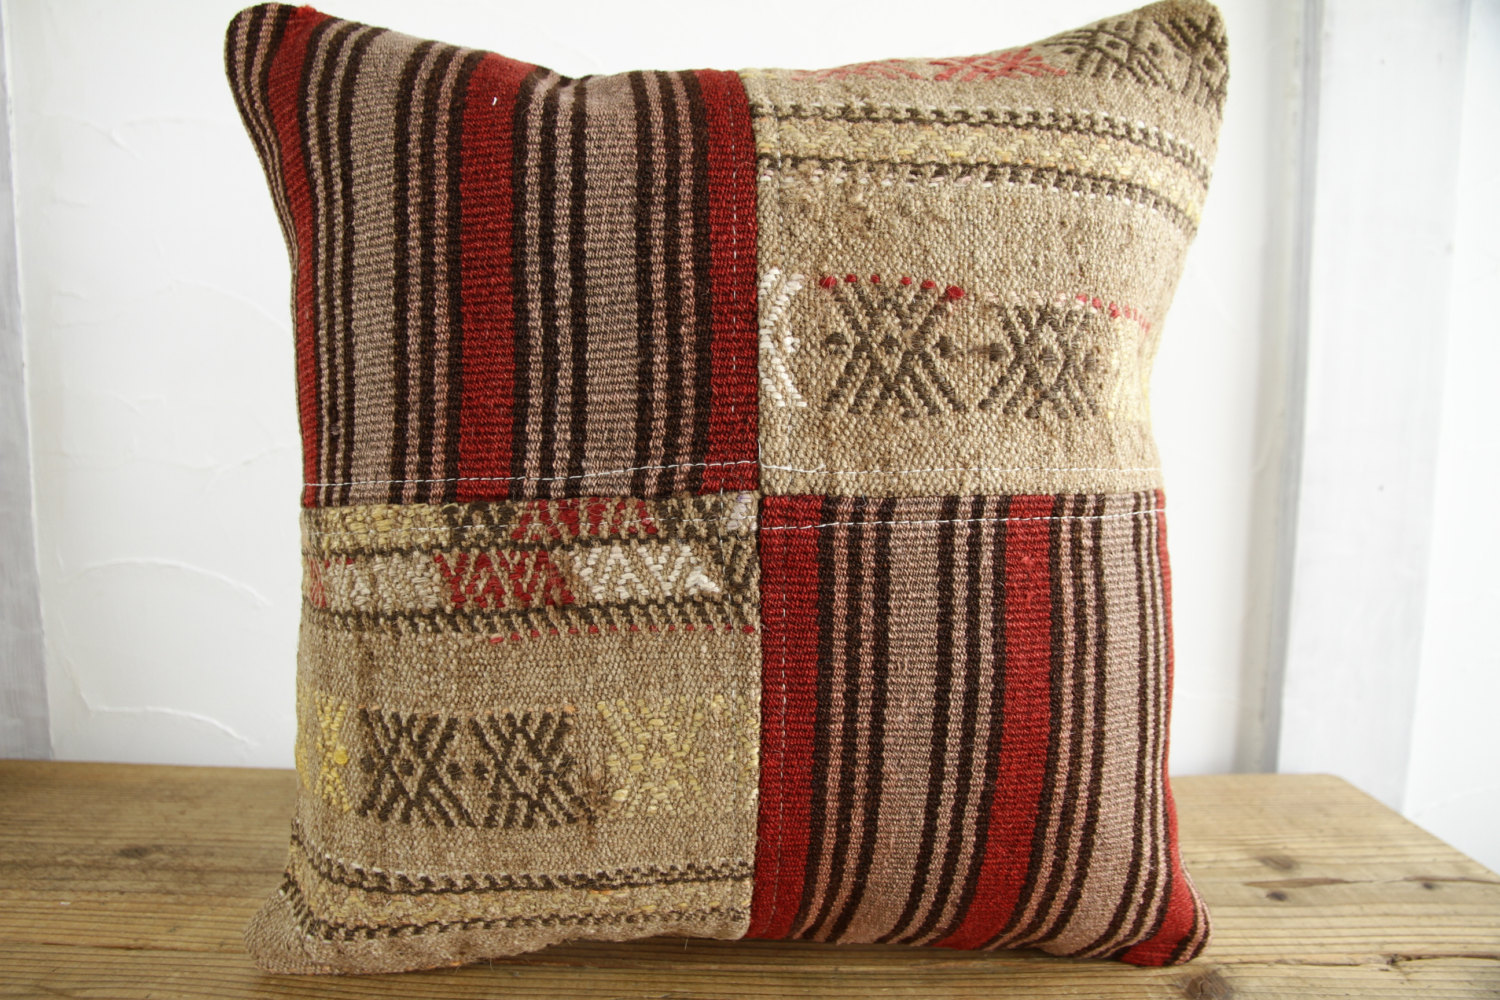 Kilim Pillows |18x18| Decorative Pillows | 362 | Accent Pillows, Kilim cushion